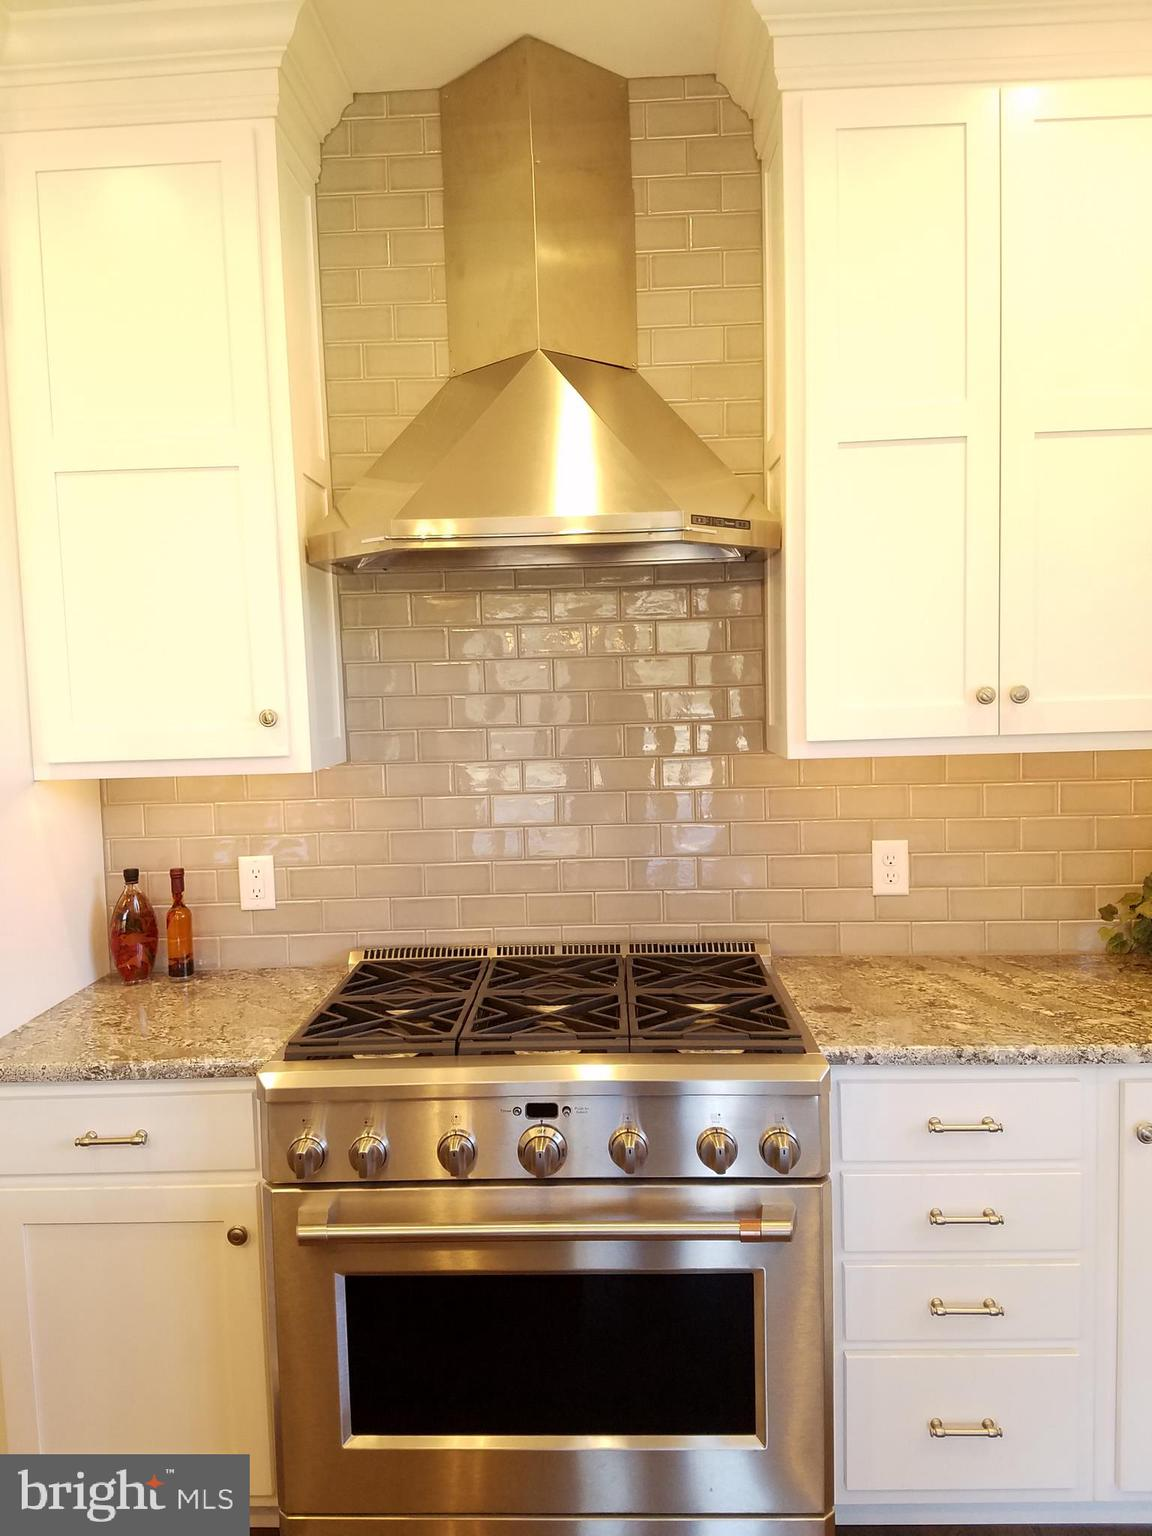 6 burner gas cooktop with tile backsplash.